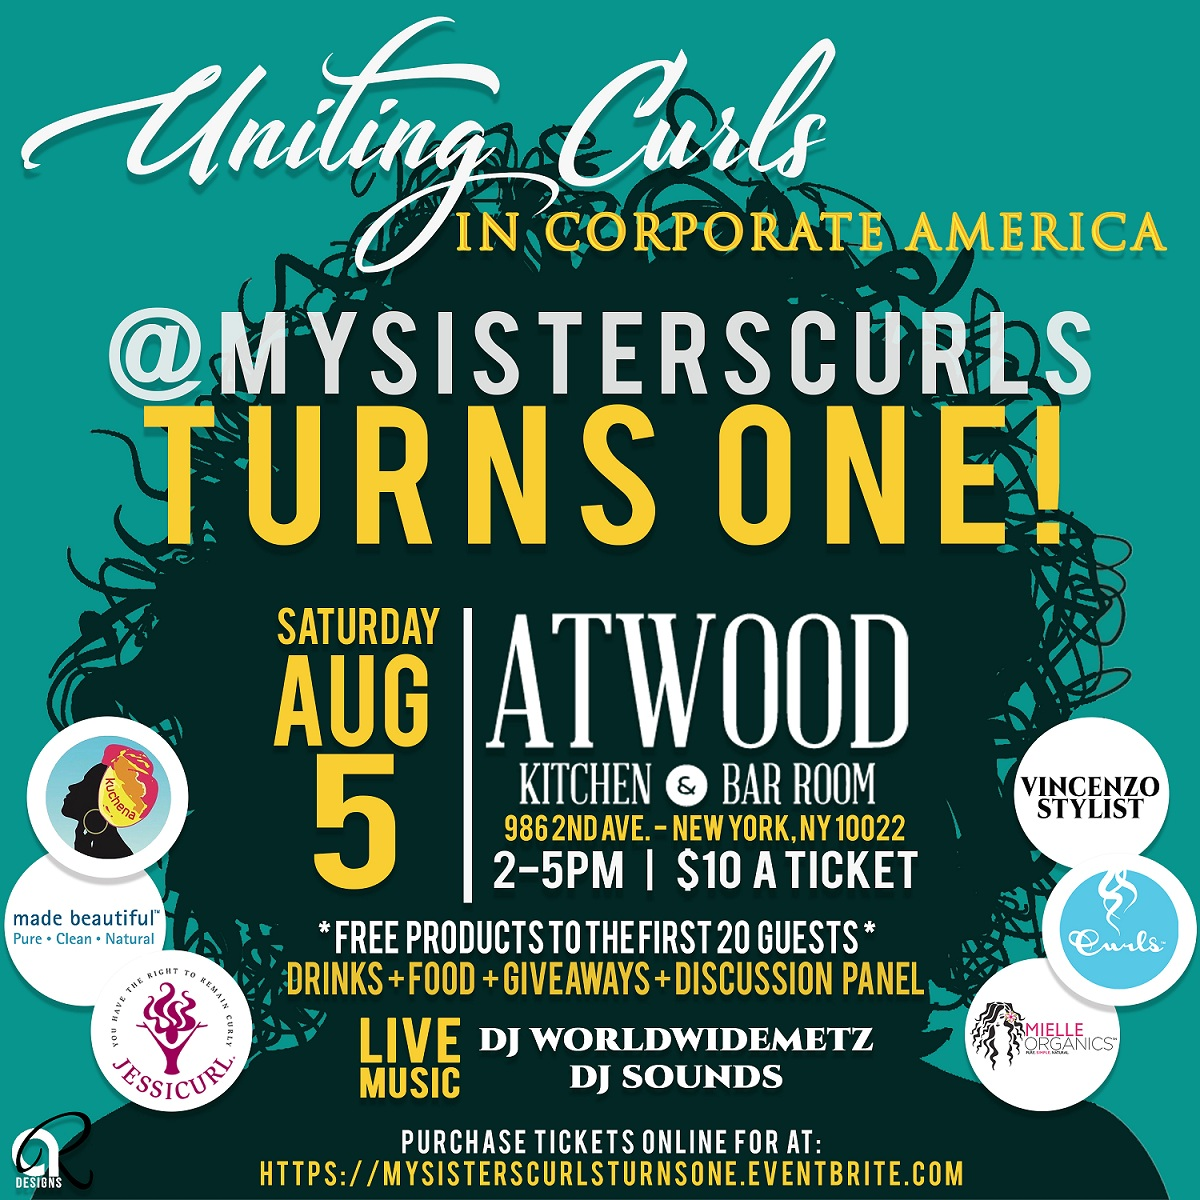 MySistersCurls Turns One Event Flyer